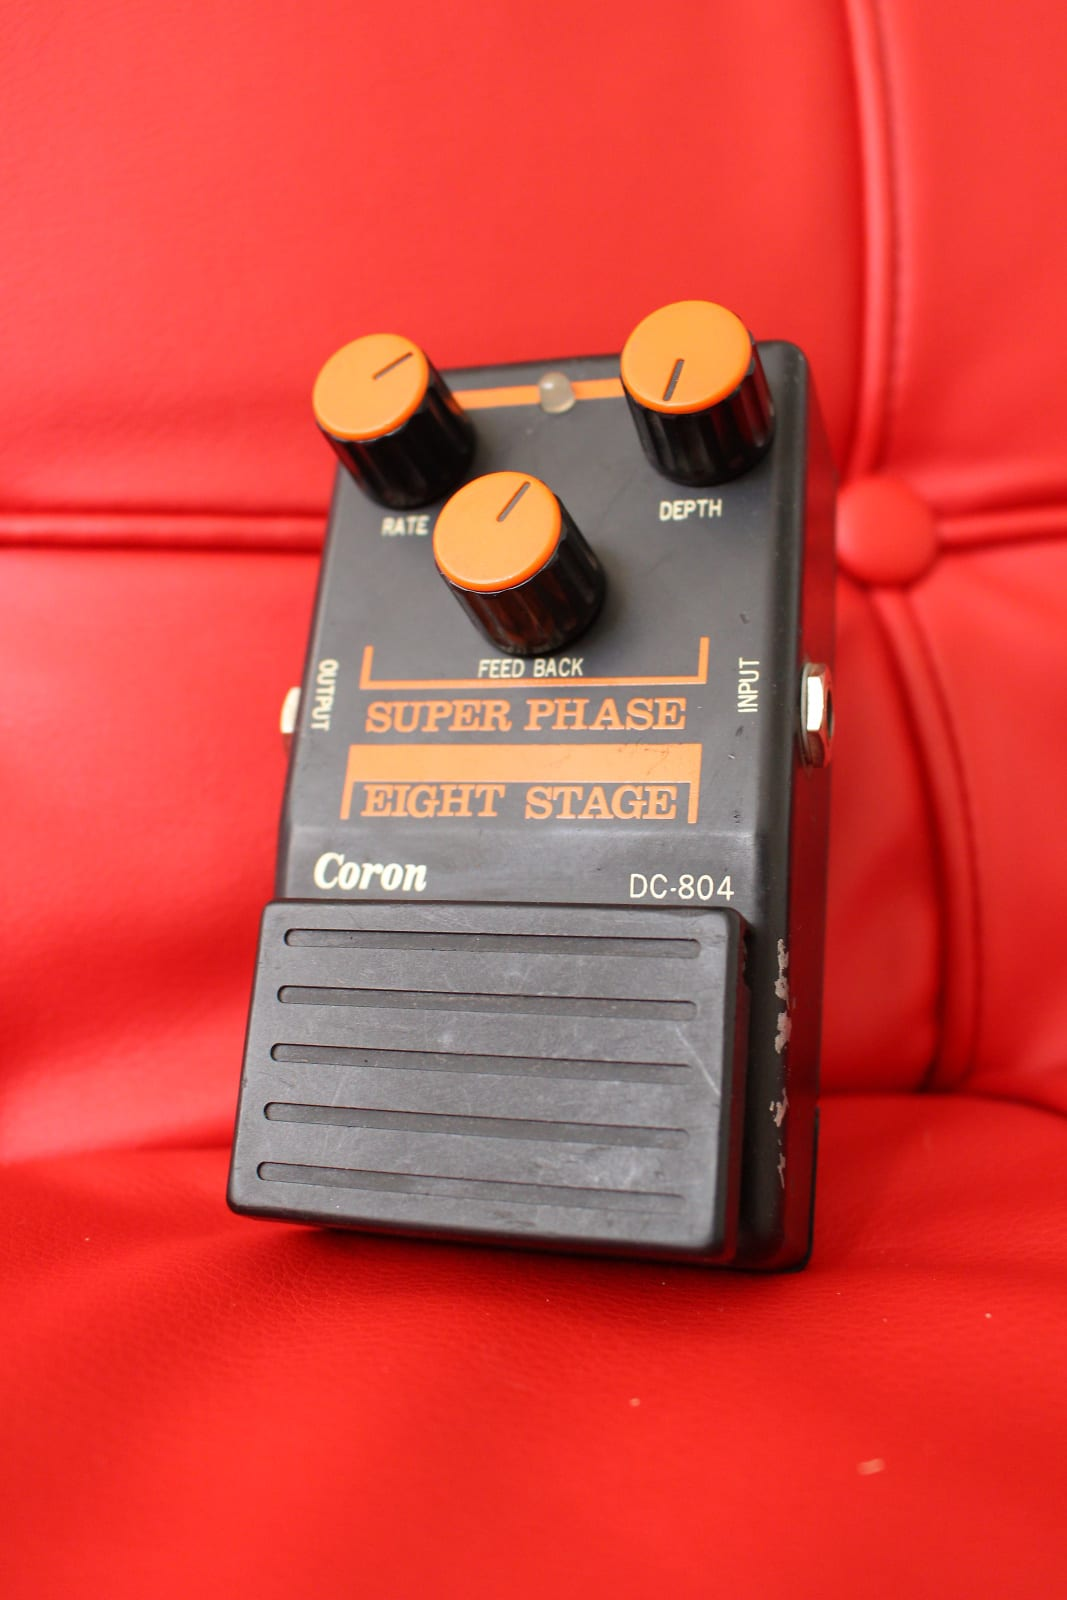 Vintage Coron Sound System Super Phase Eight Stage DC-804